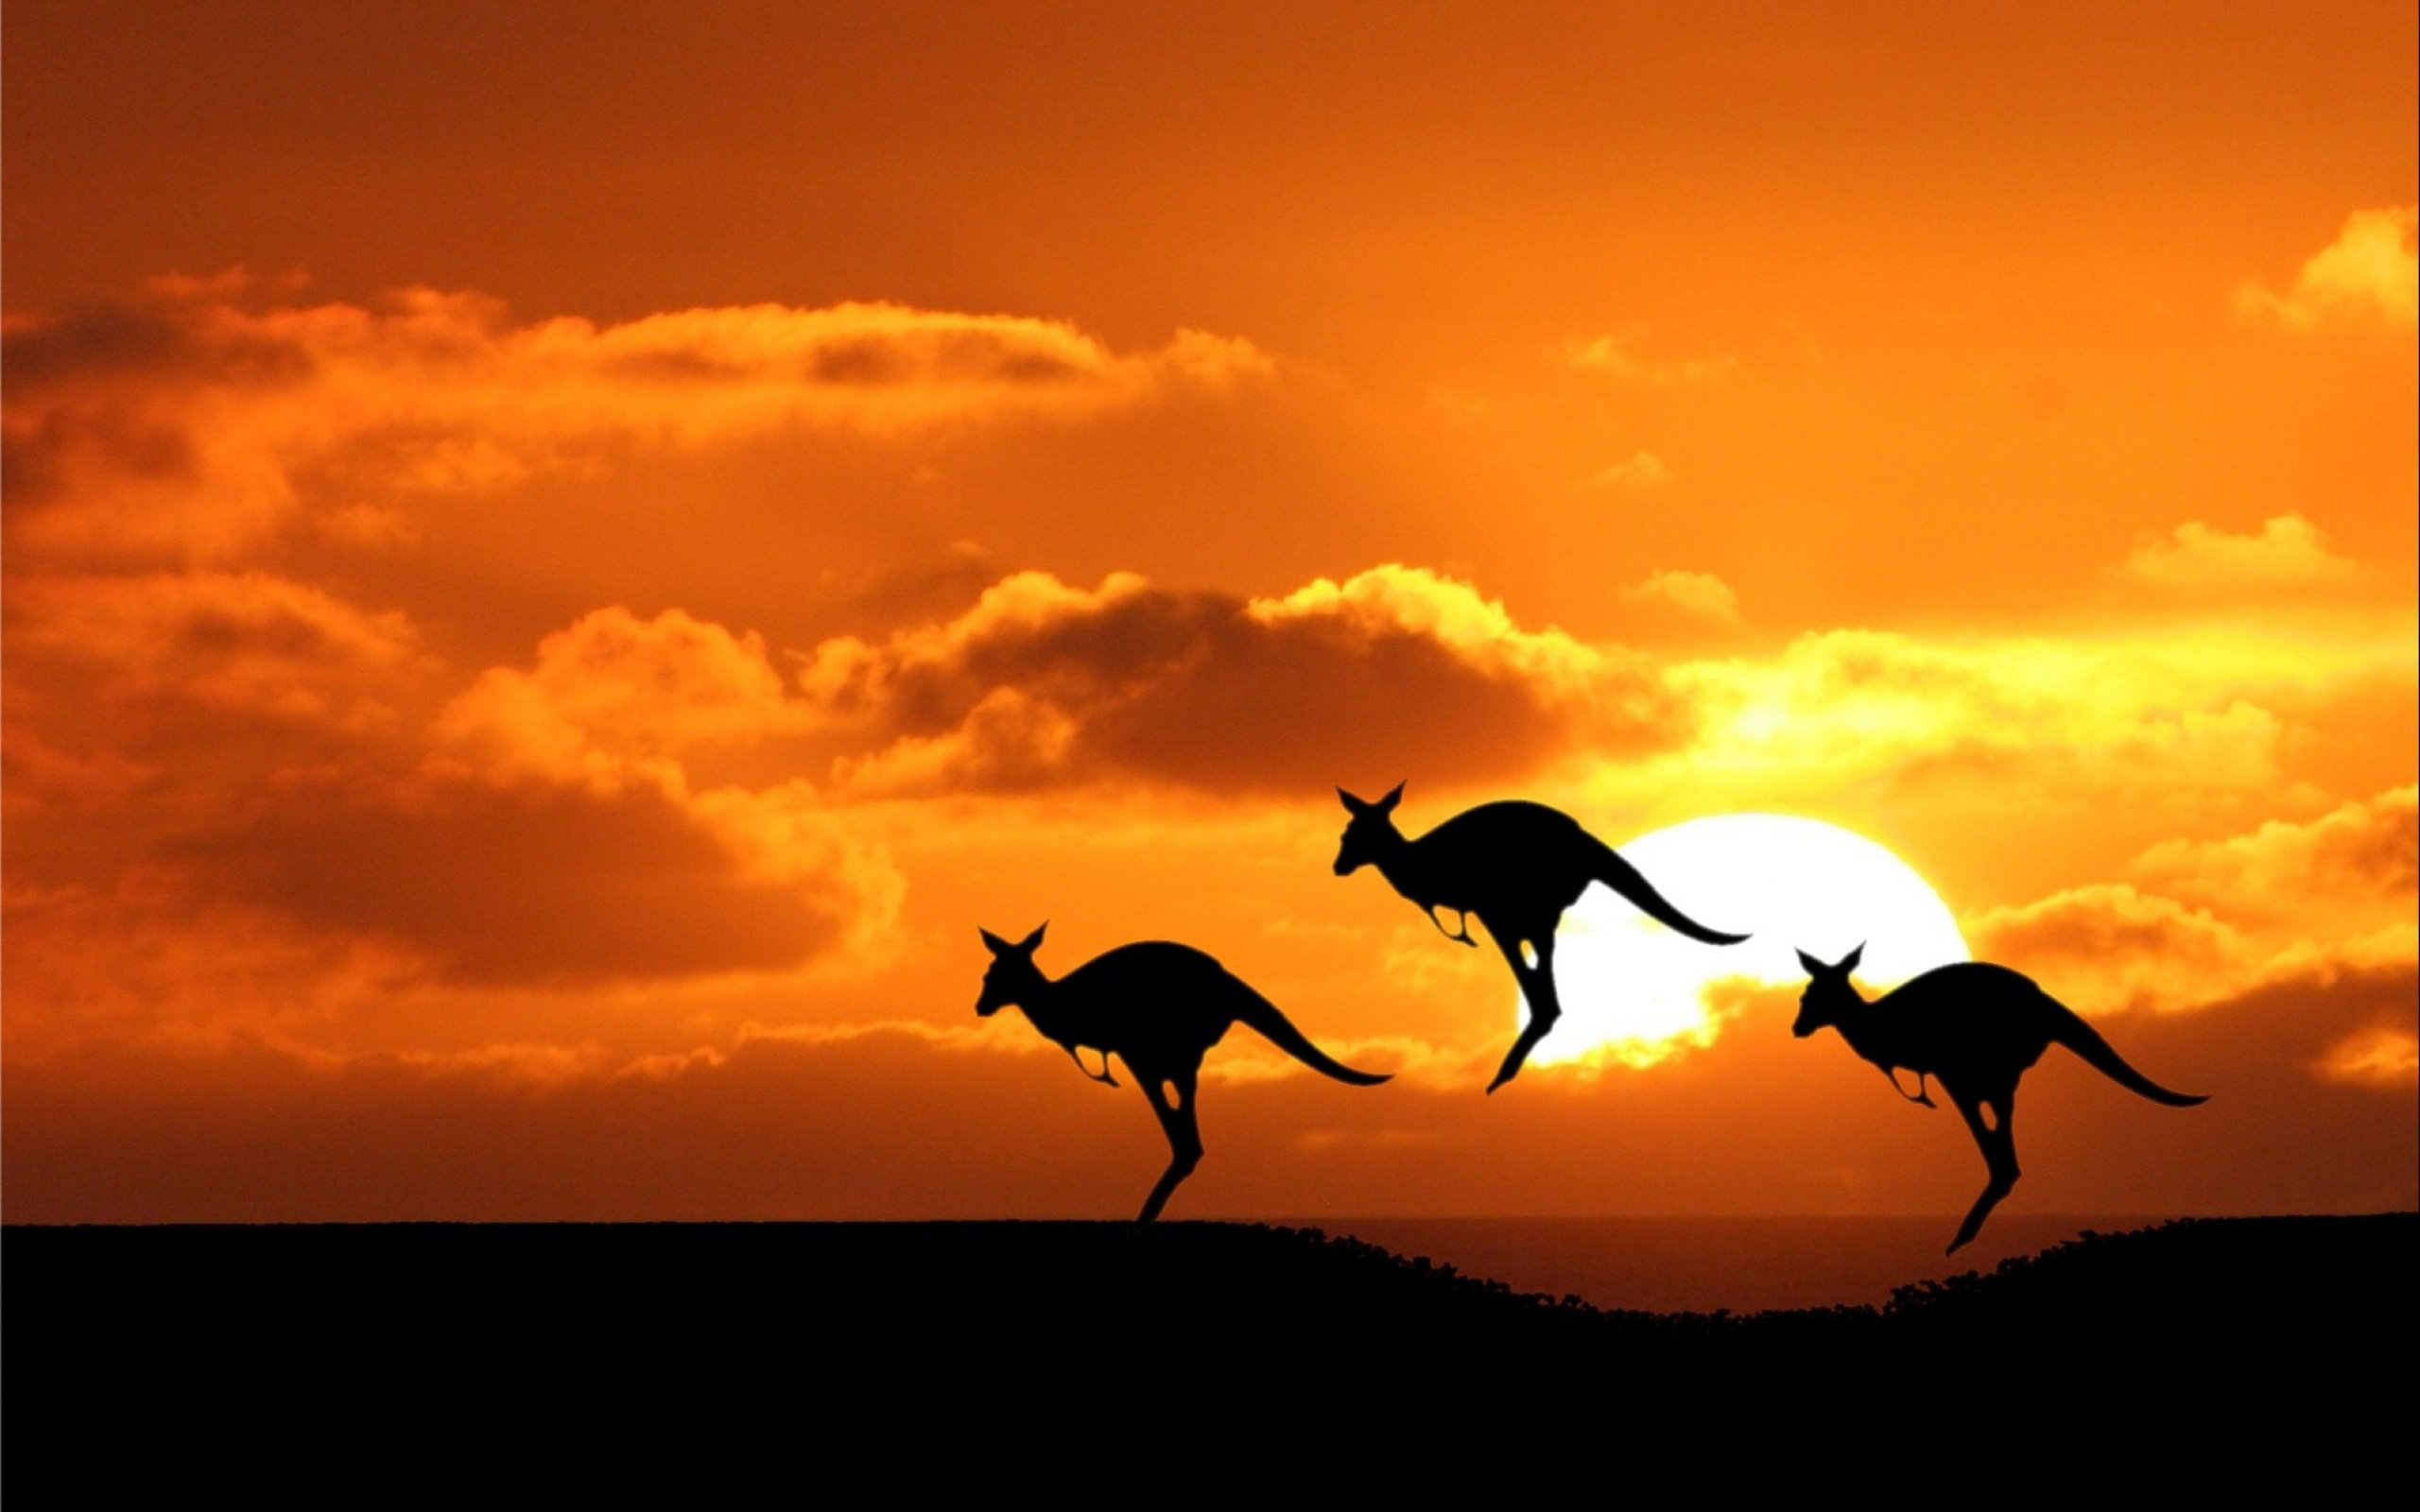 High resolution Kangaroo hd 2560x1600 background ID:122486 for computer